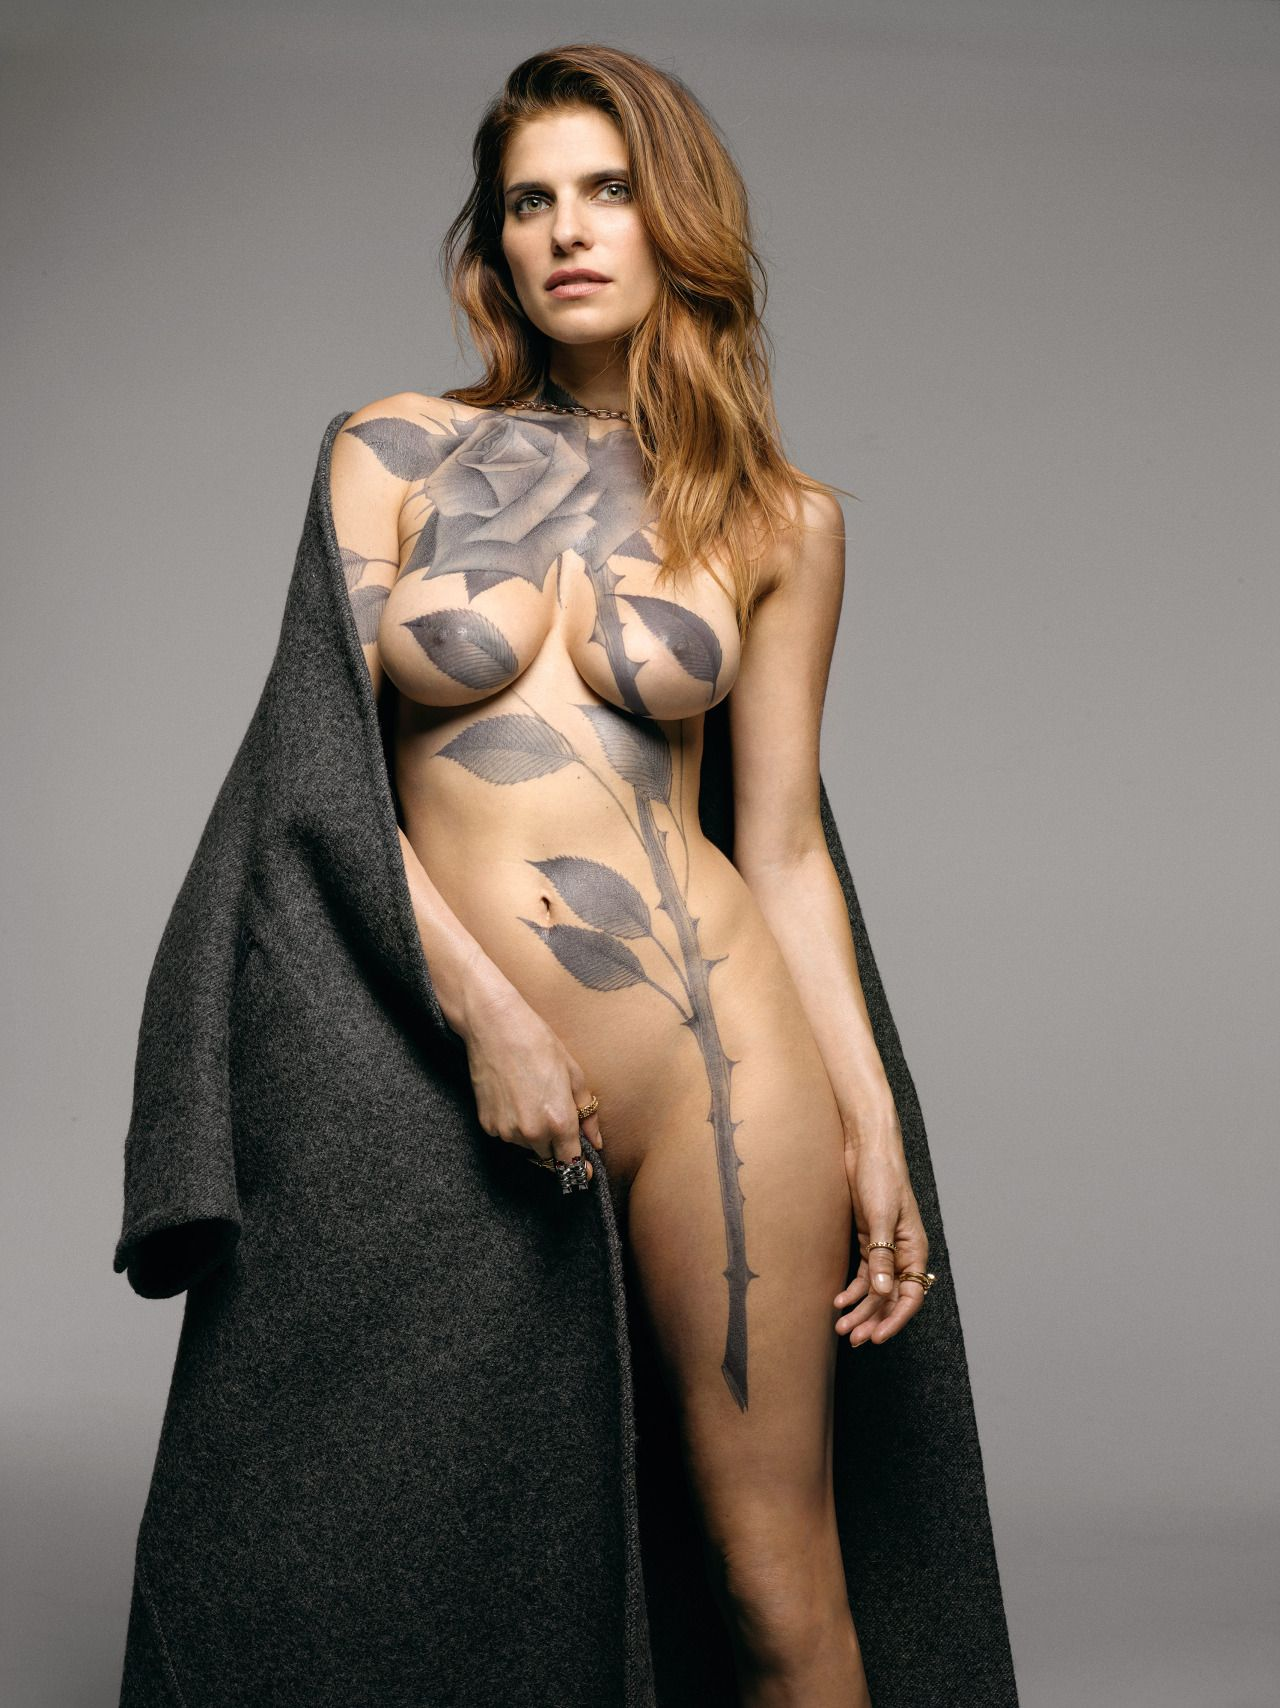 "Maori Girls Nude Classy celebhunterextra: "" lake bell more at nude sex scenes "" 